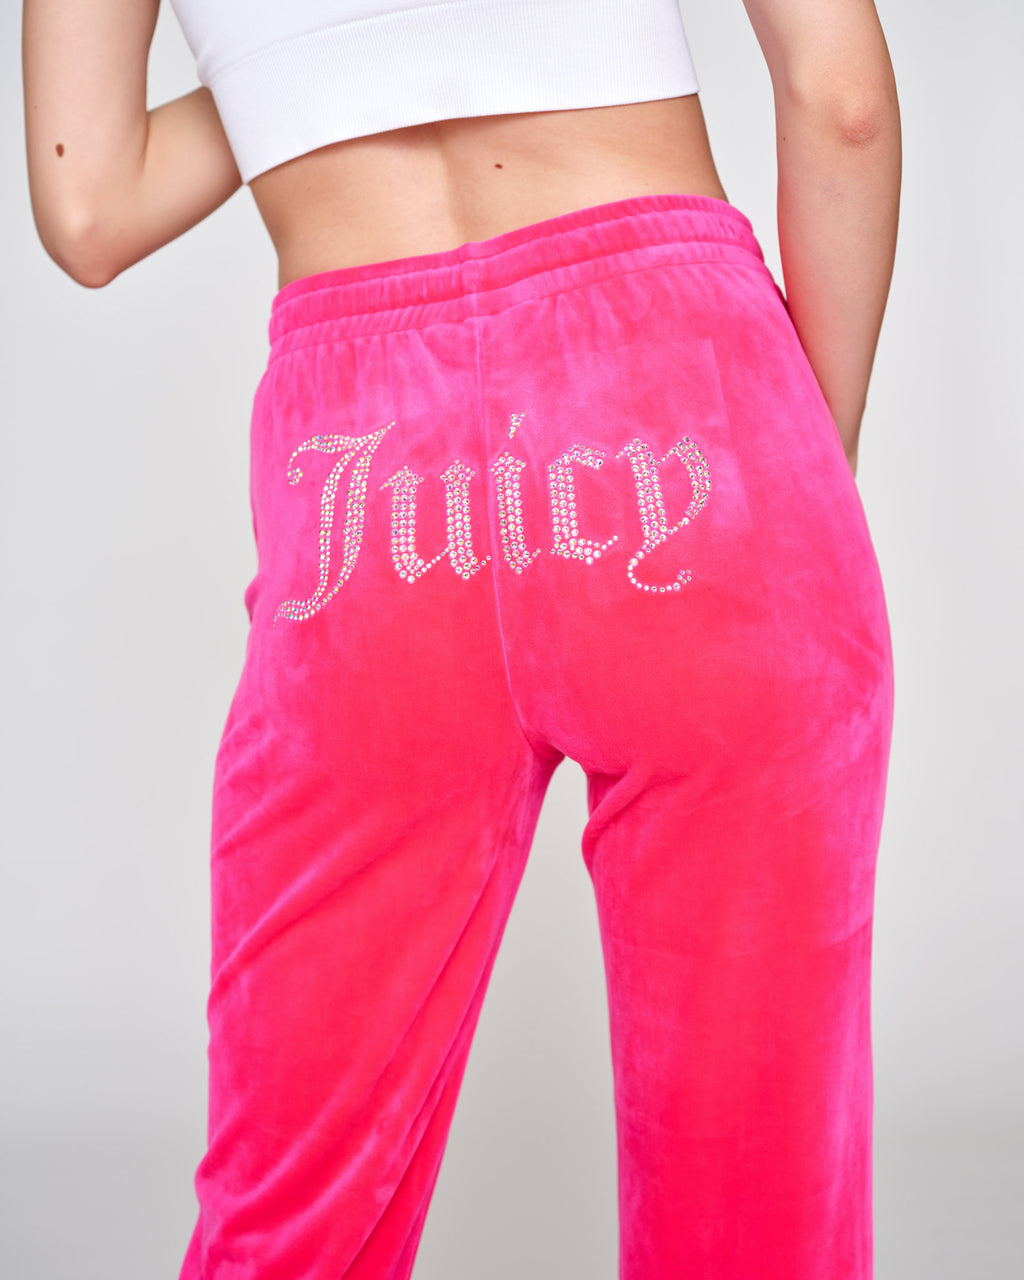 Tina Diamante Velour Pant Pink Glo - Juicy Couture Scandinavia